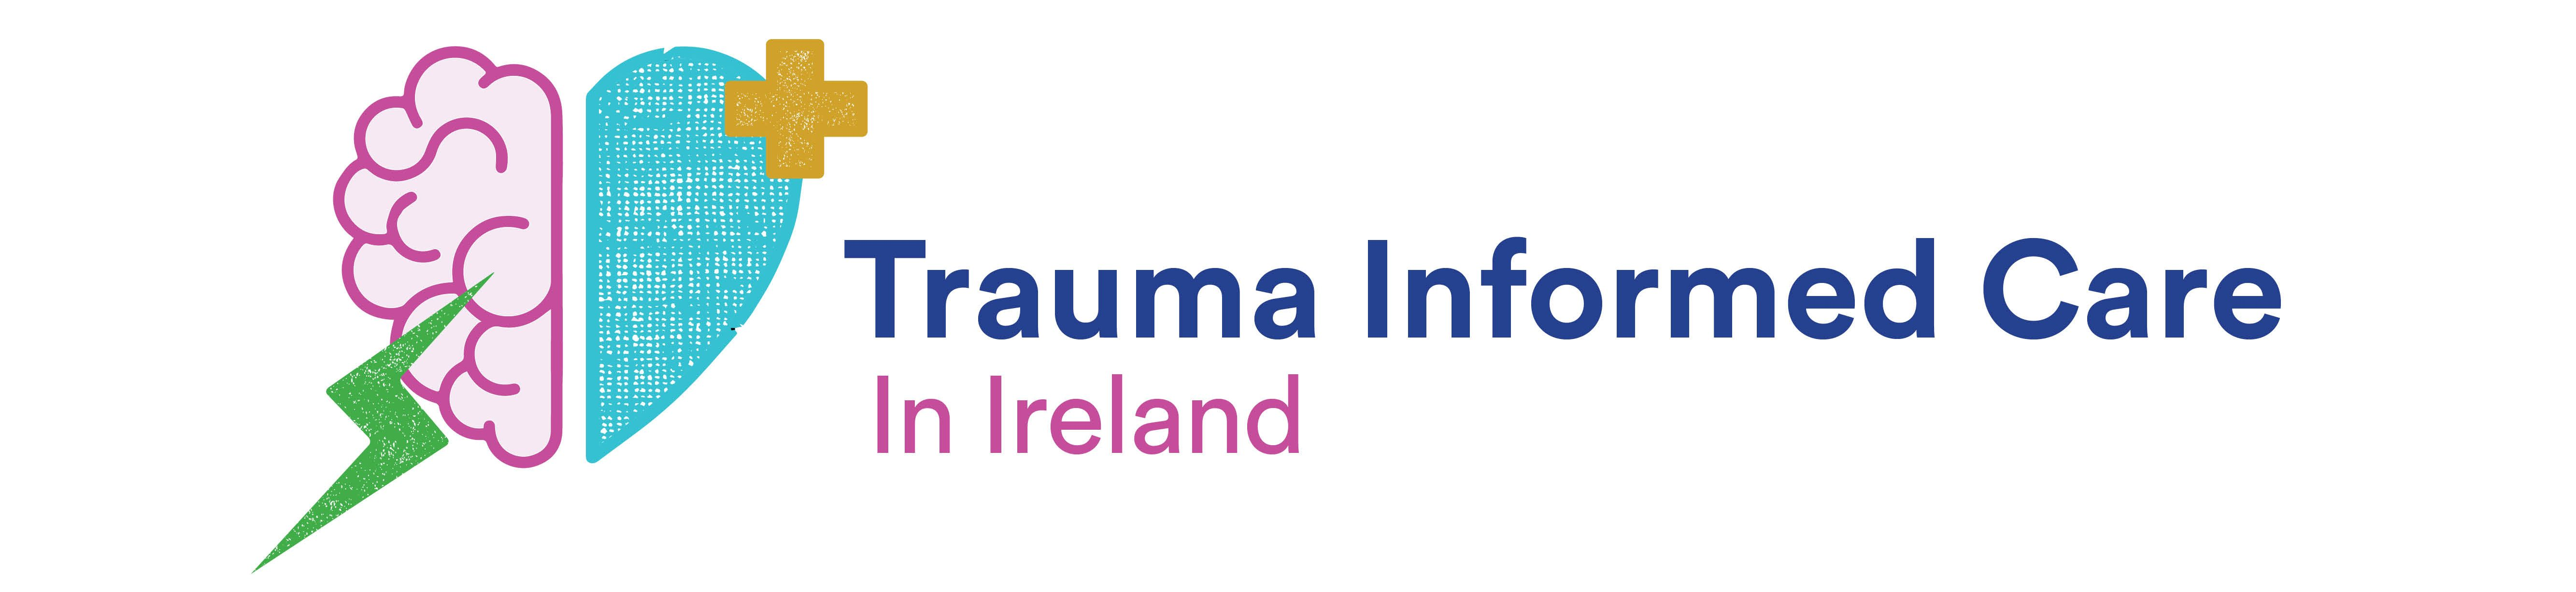 Trauma Informed Care in Ireland